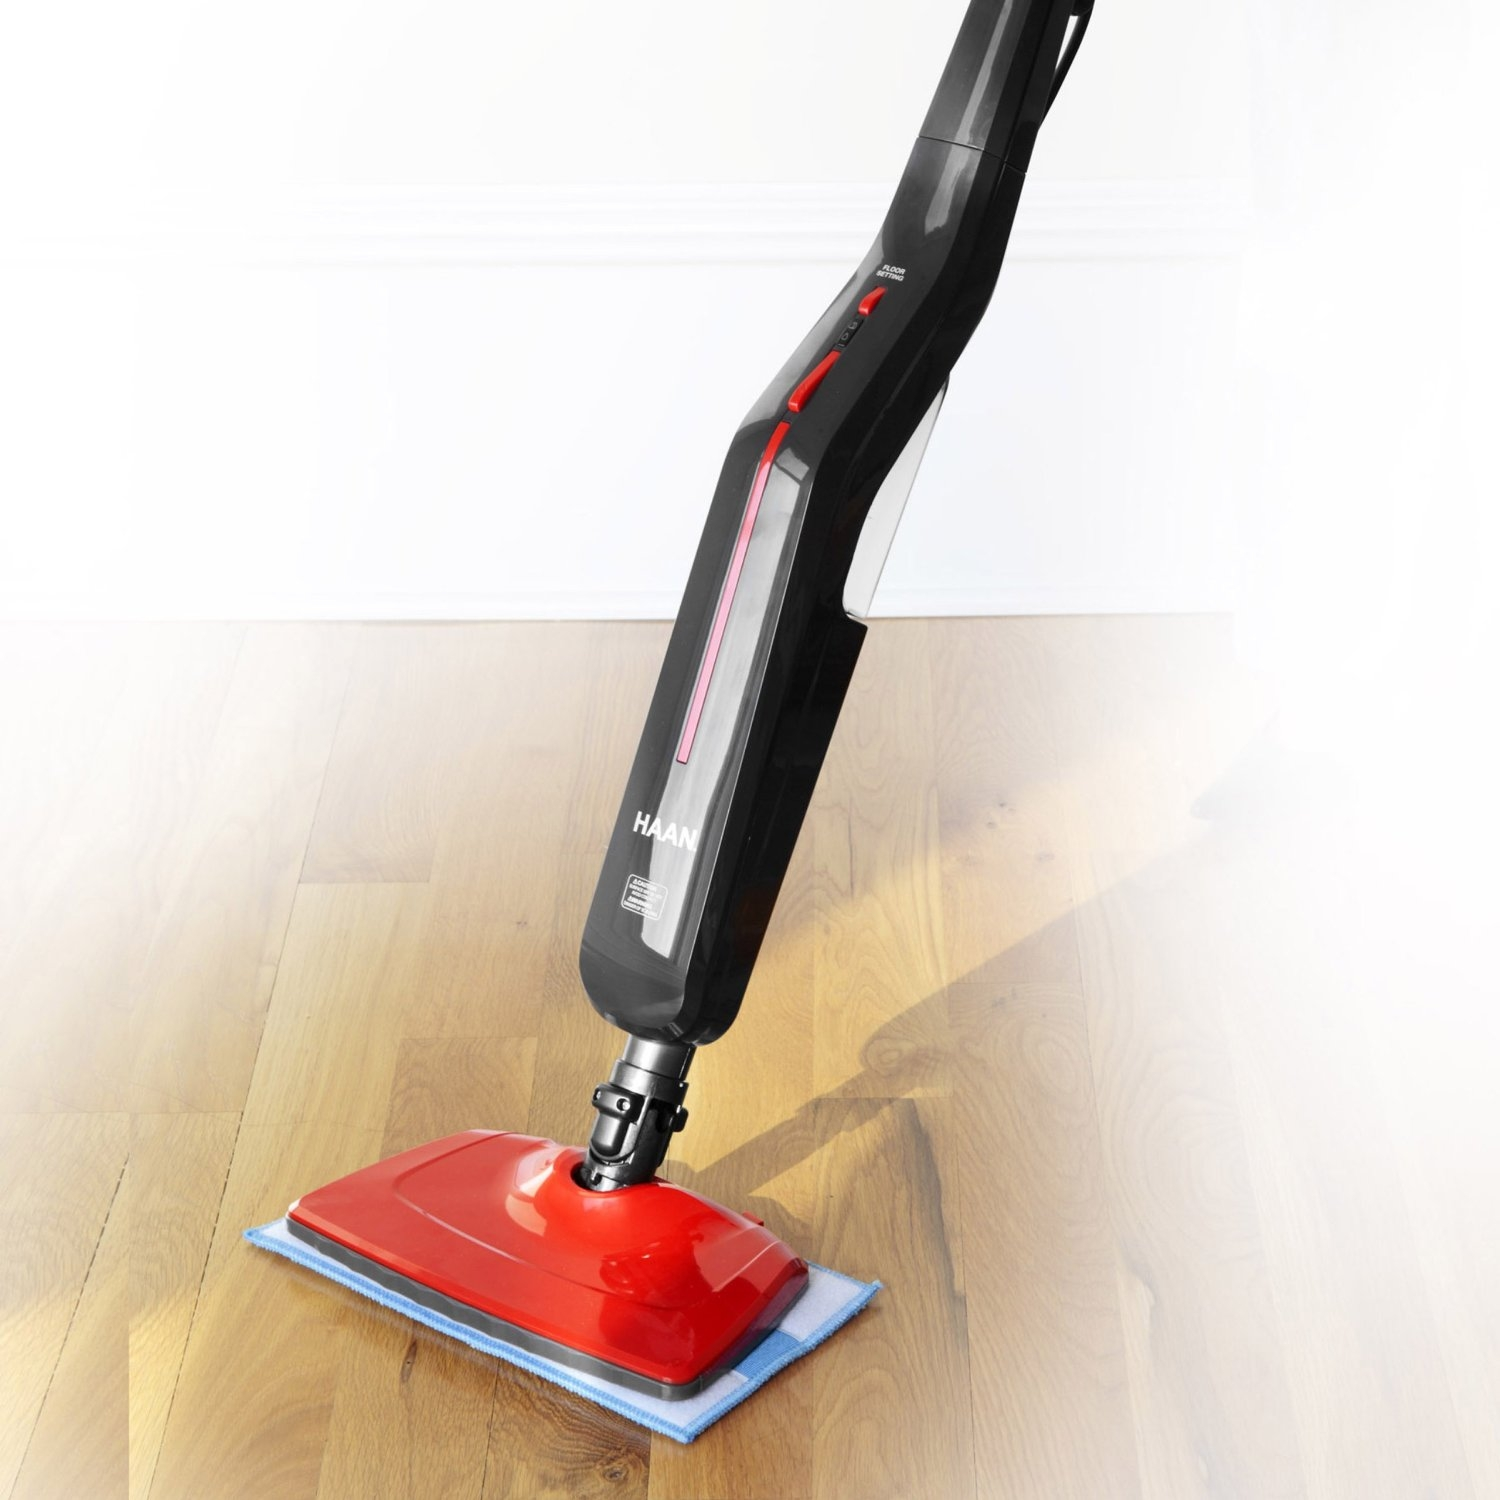 Are Steamers Good For Wood Floorsbest steam mop review for laminate floors 2016 2017